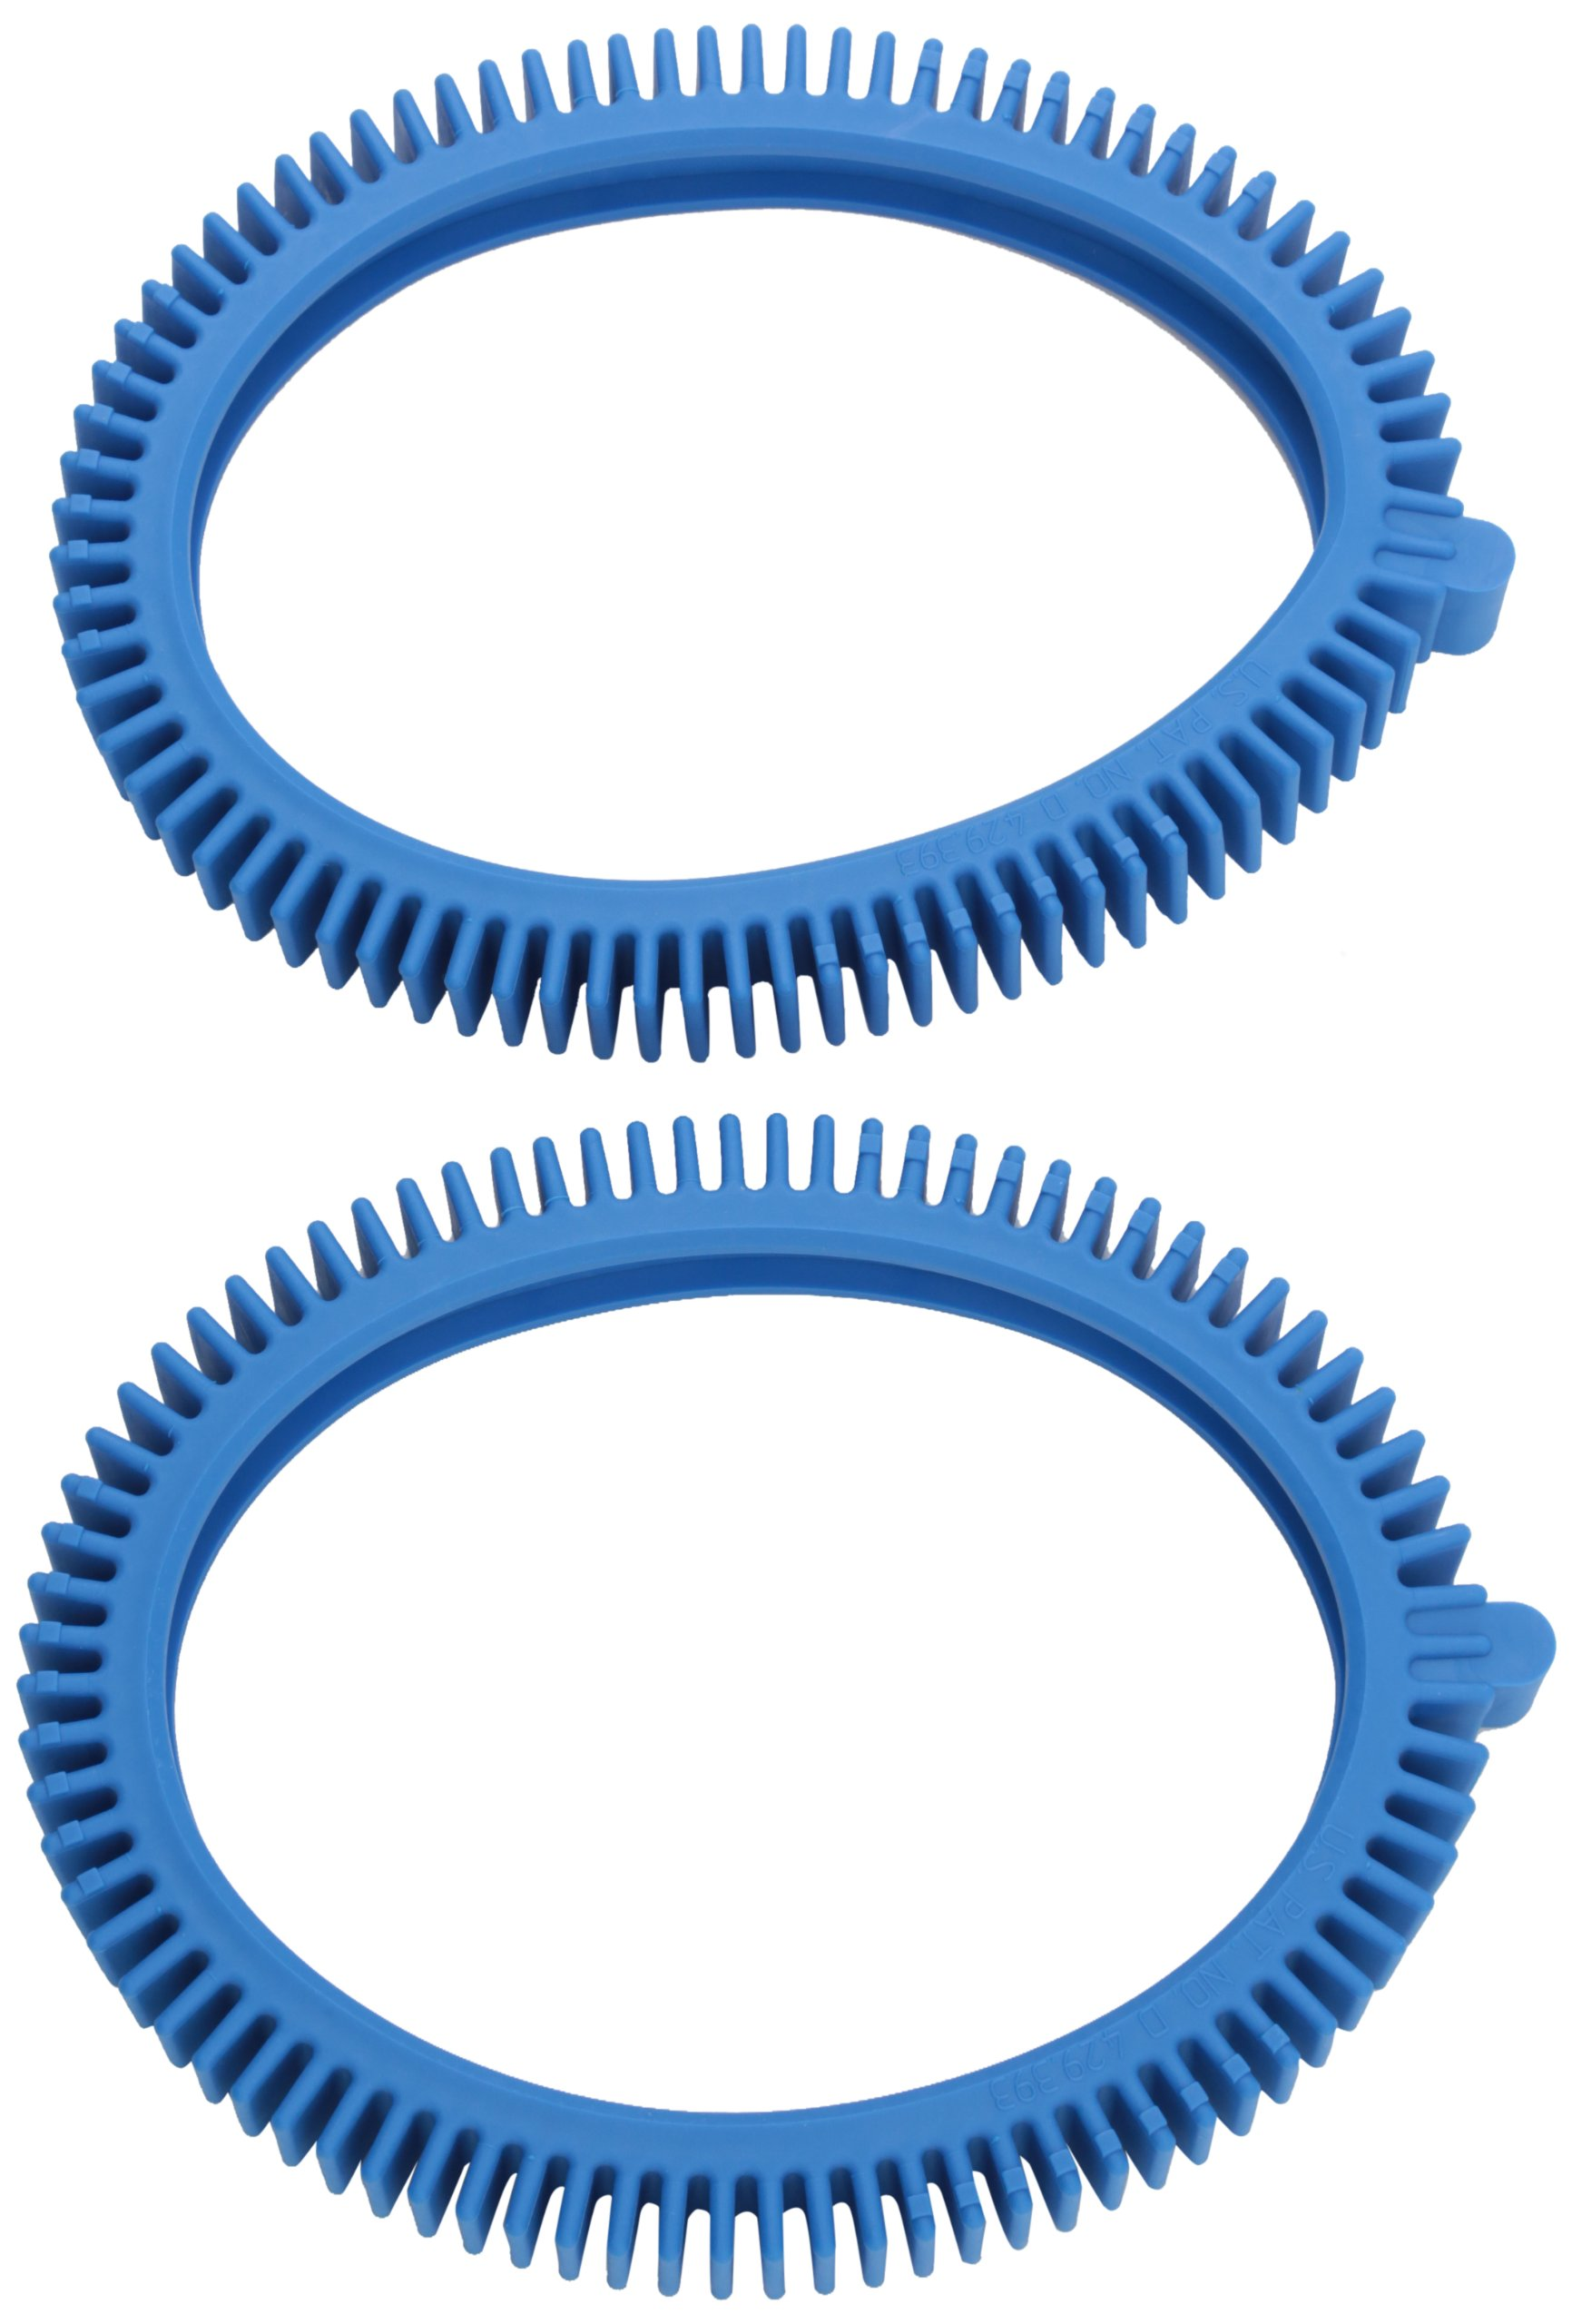 Poolvergnuegen 896584000-143 2-Pack Blue Front Tire Kit with Super Hump Replacement for Select Pool Cleaners - concrete pool